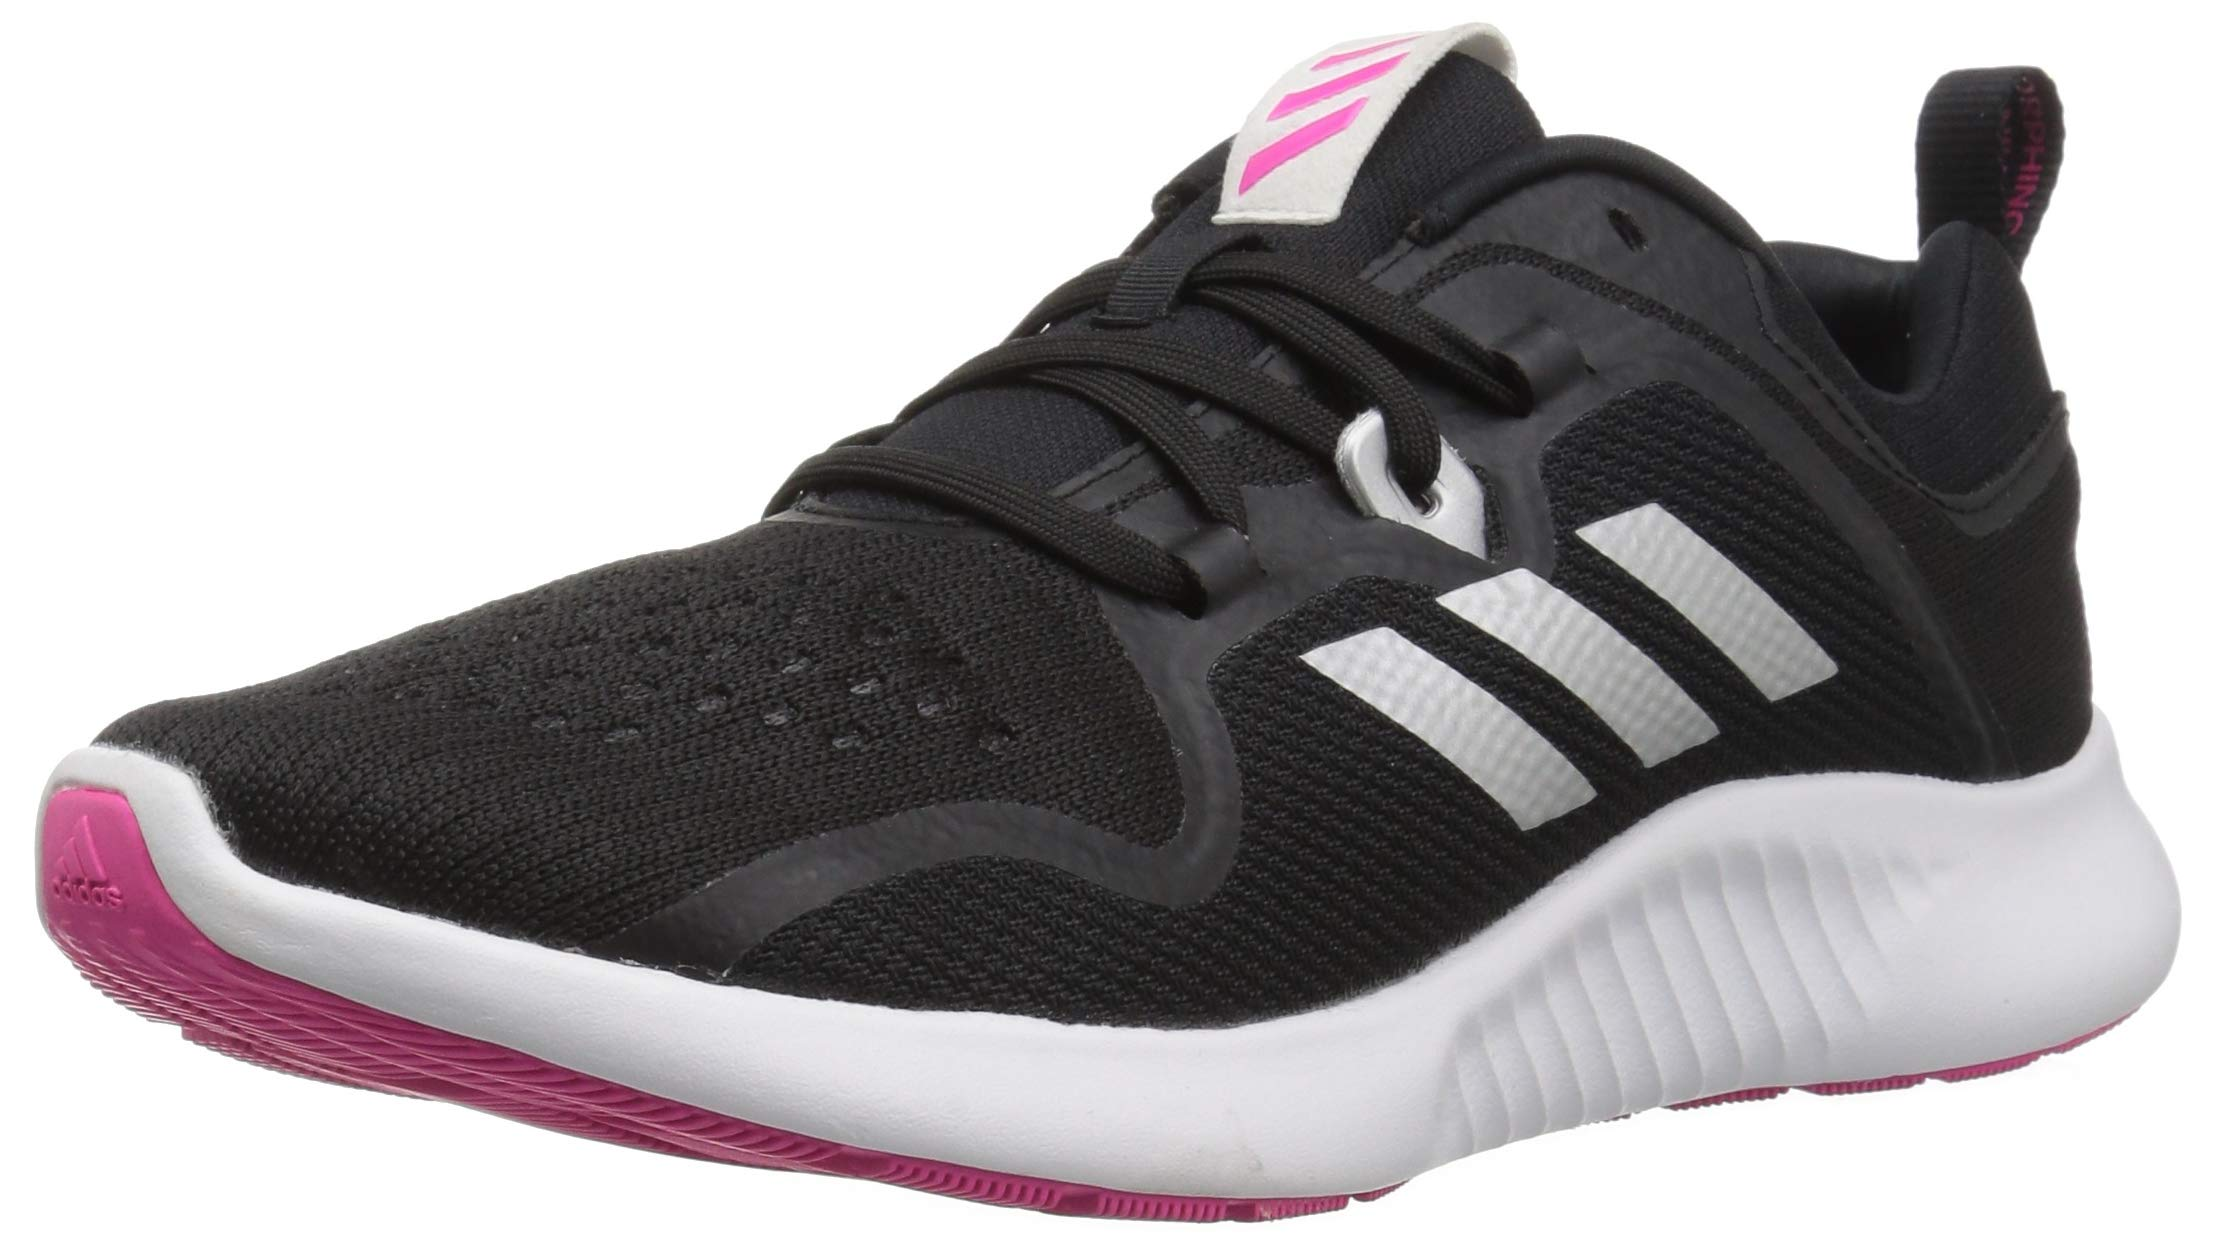 adidas Women's EdgeBounce Running Shoe Black/Silver Metallic/Shock Pink 5 M US by adidas (Image #1)